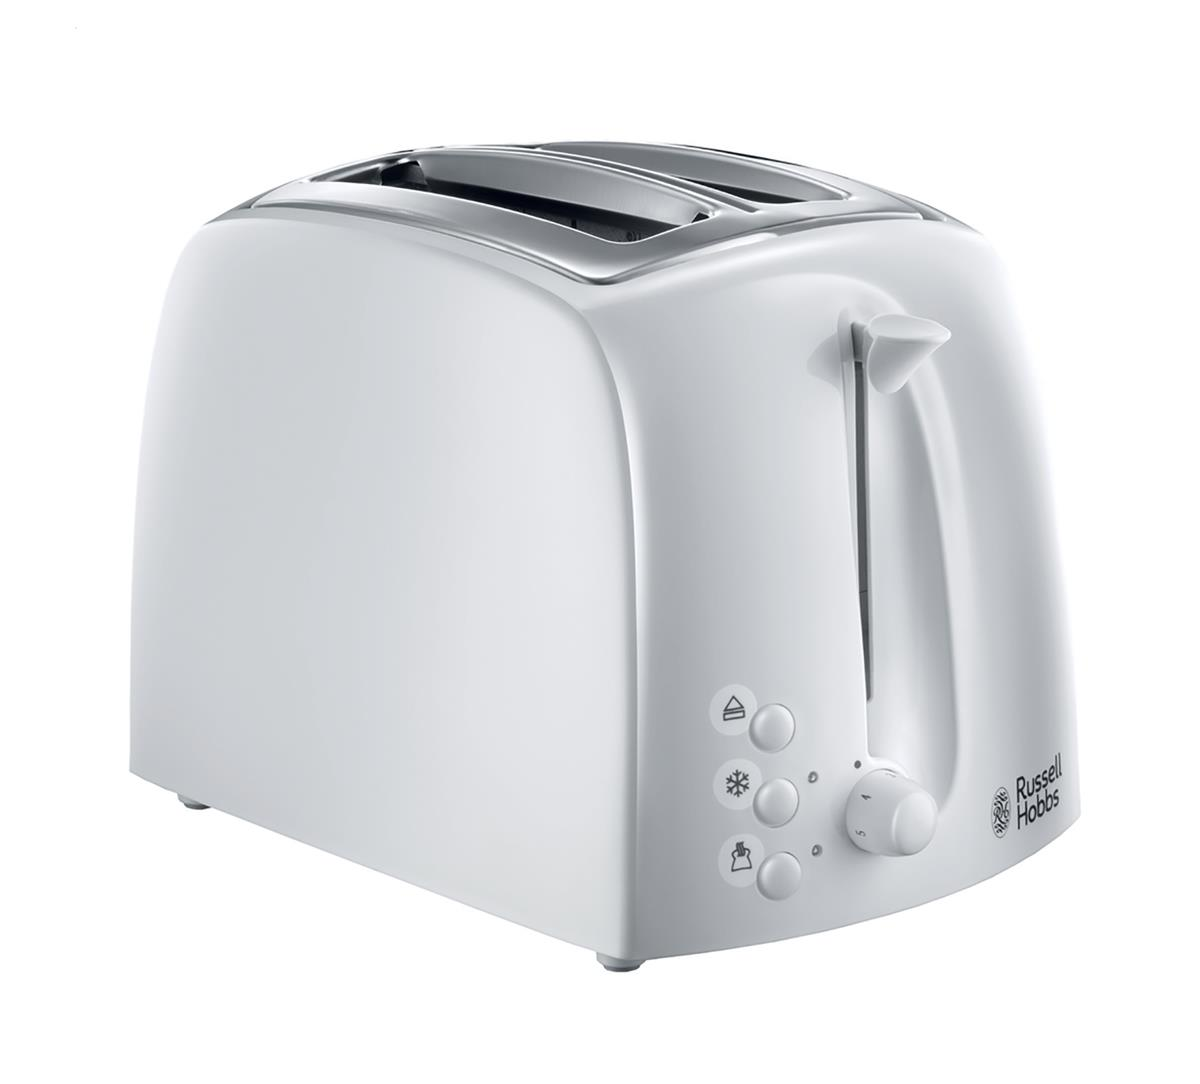 Brabantia Toaster 930W Reheat Defrost Crumb Tray Auto-off White Ref RH2164